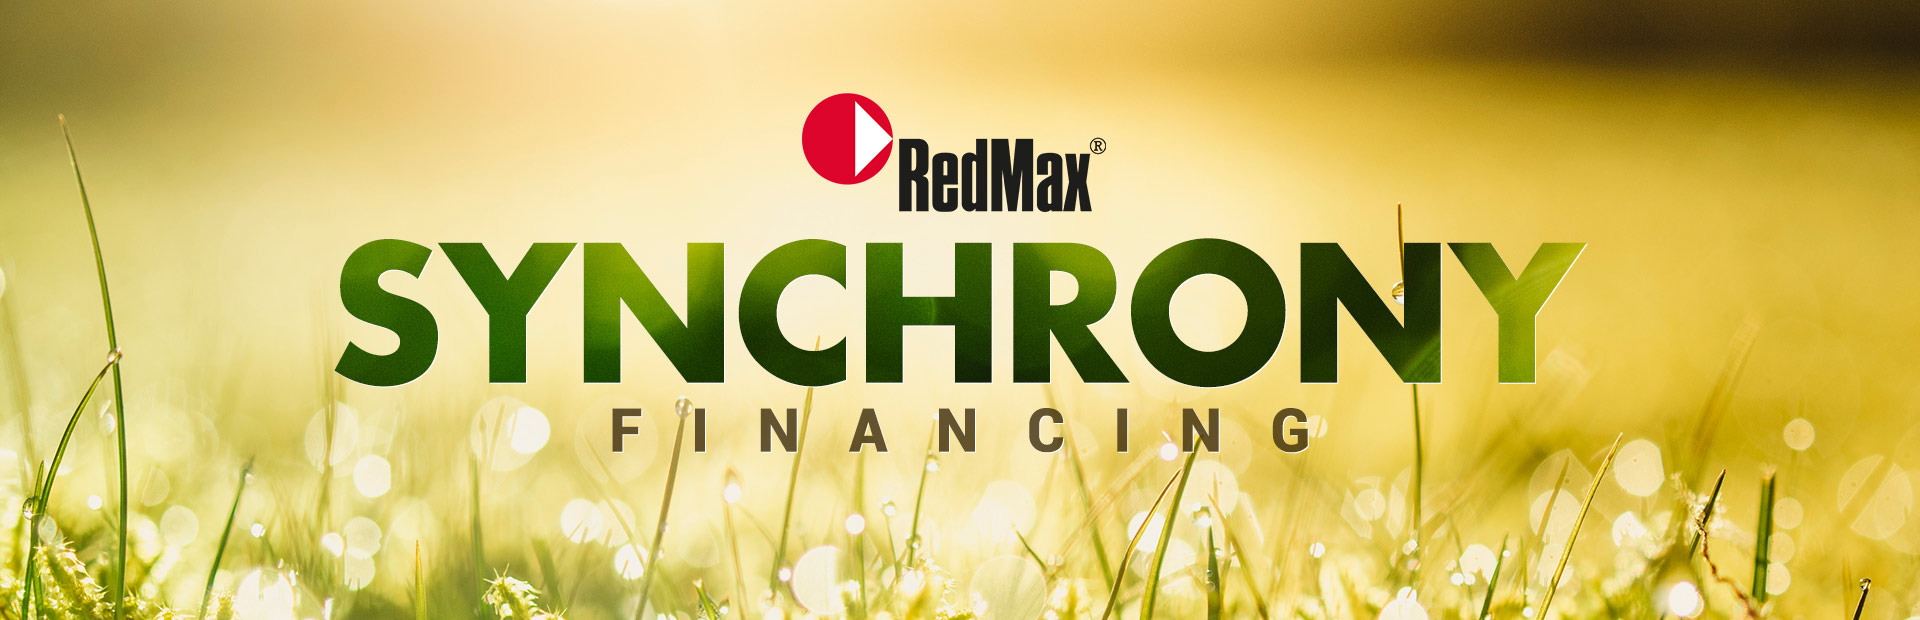 RedMax: Synchrony Financing